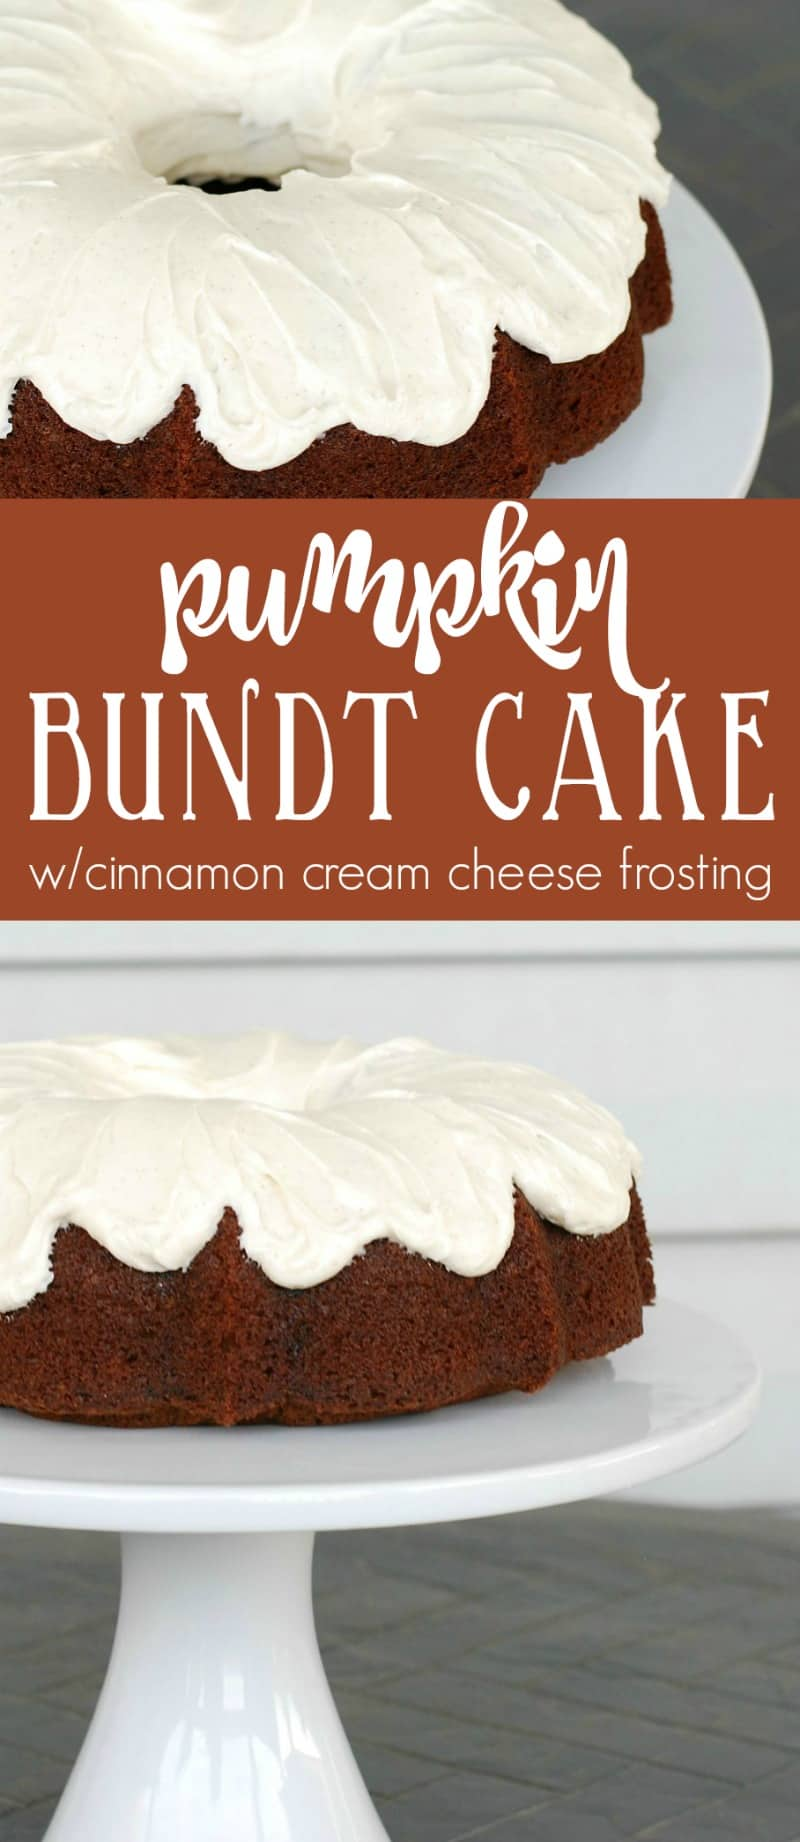 Pumpkin cake with cinnamon cream cheese frosting. The best pumpkin cake ever! Everyone raves about this pumpkin cake recipe.